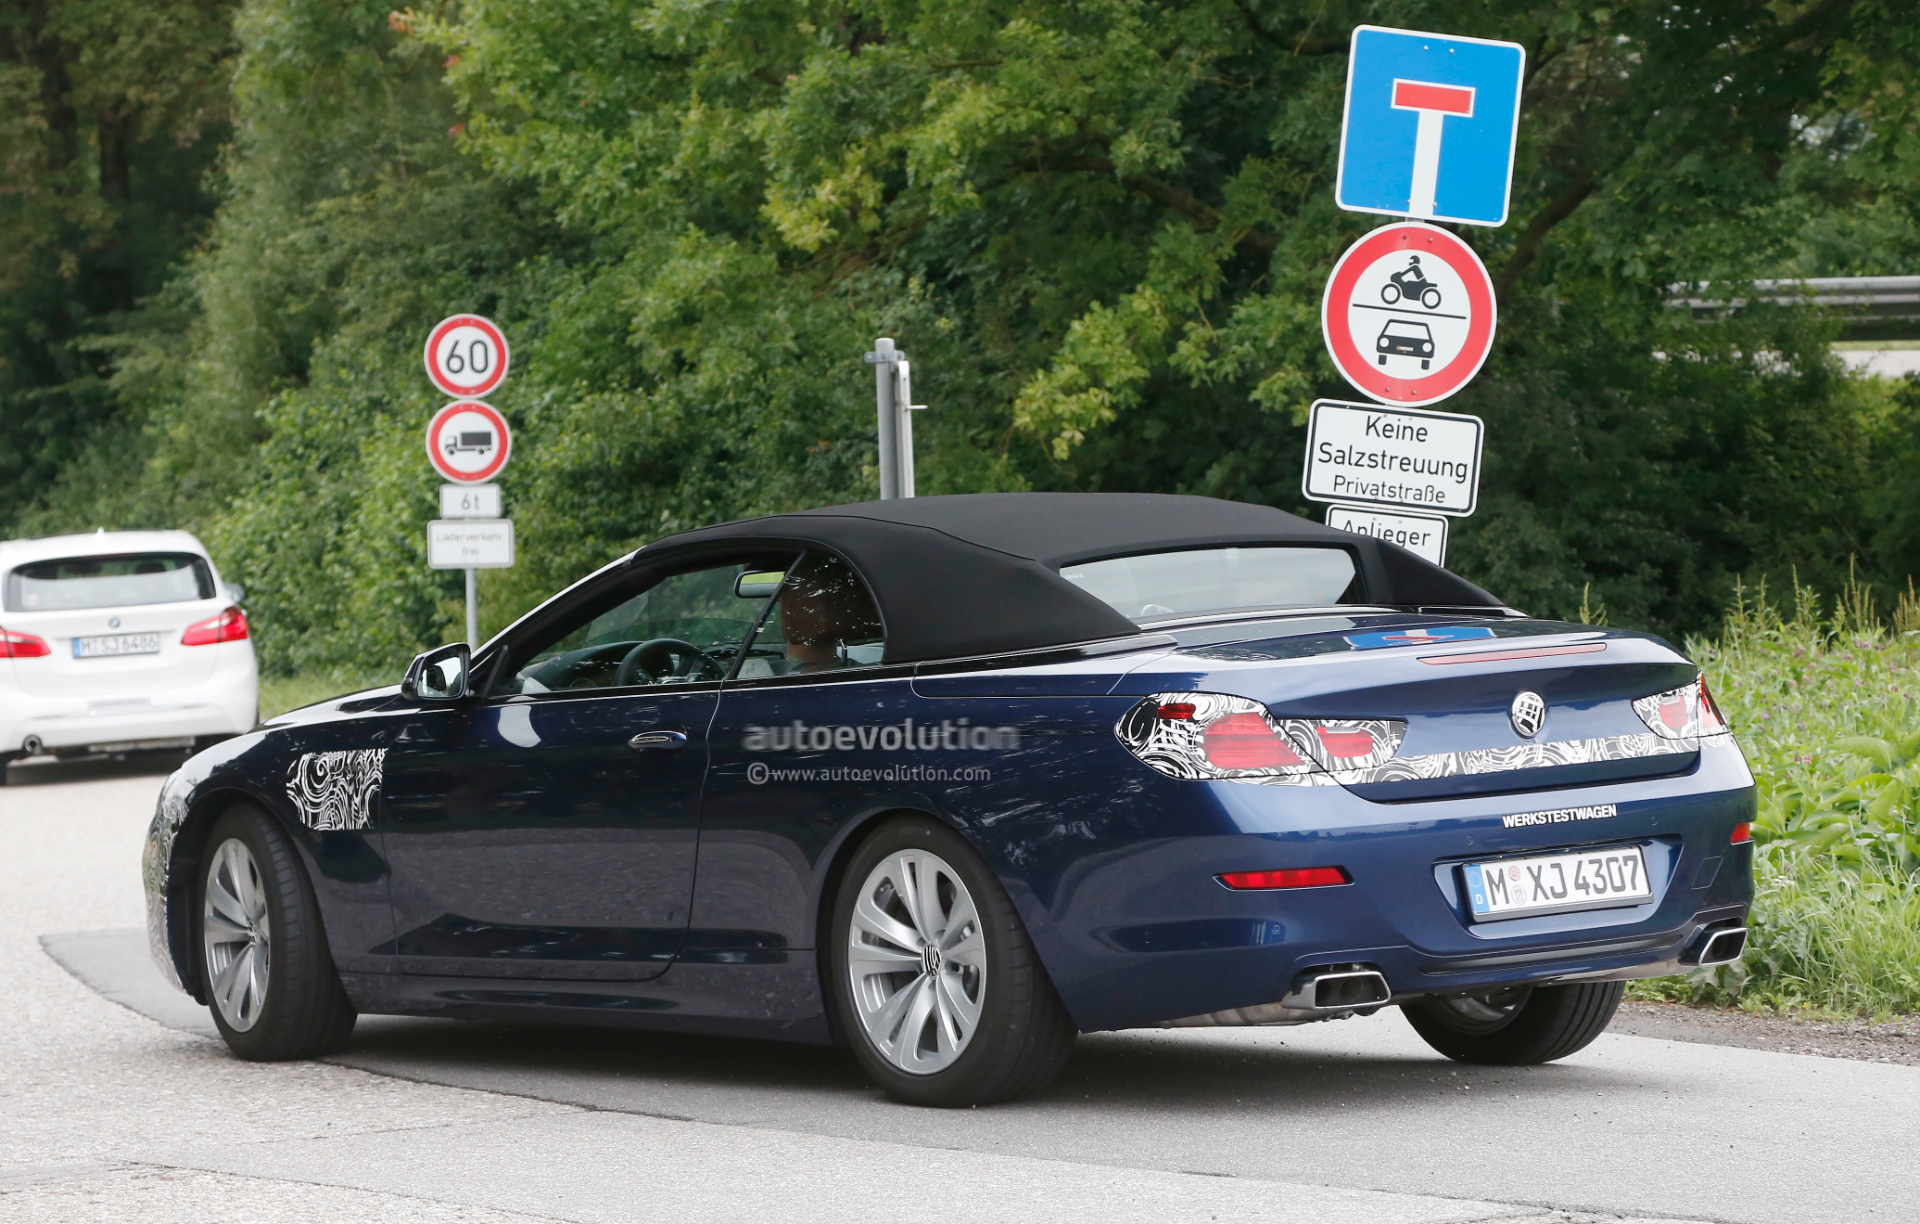 2015 BMW F12 Convertible Facelift Spotted Testing for the ...